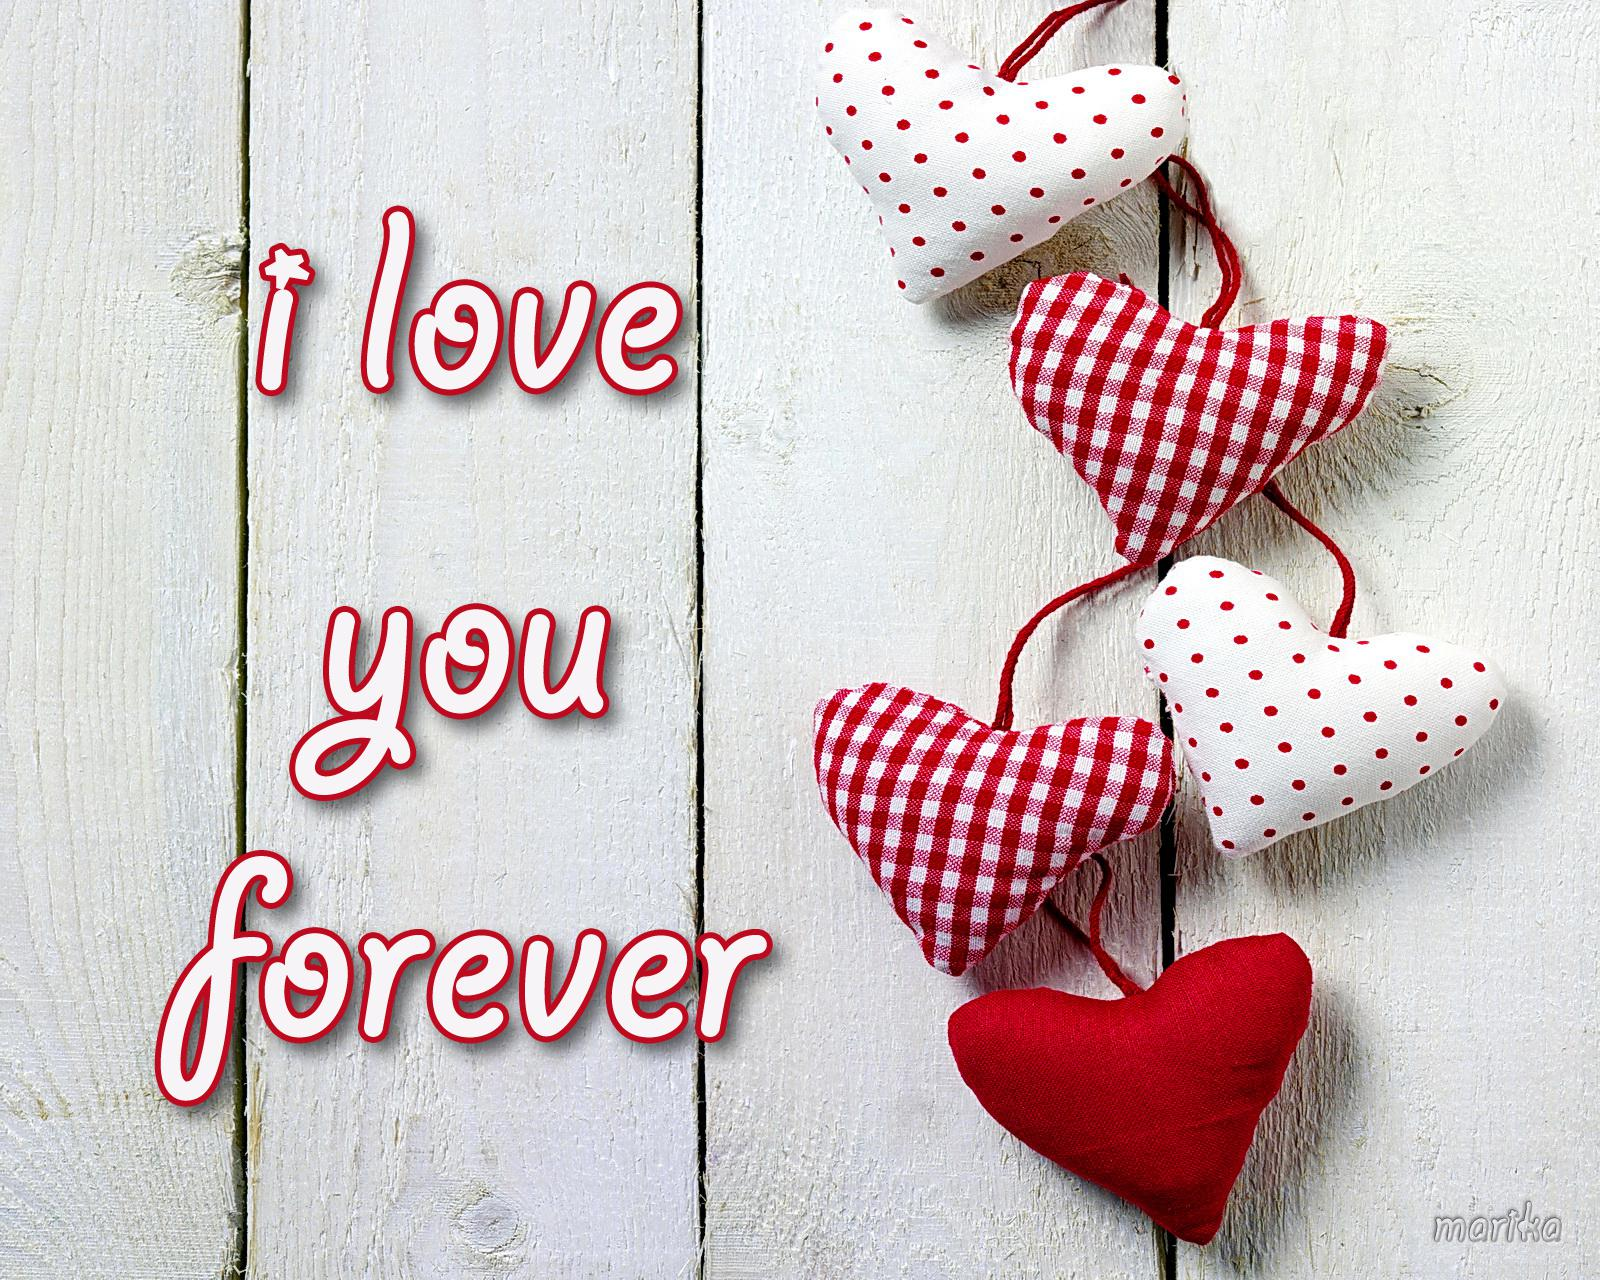 Nida 3d Name Wallpaper I Love You Wallpapers Hd A16 Hd Desktop Wallpapers 4k Hd